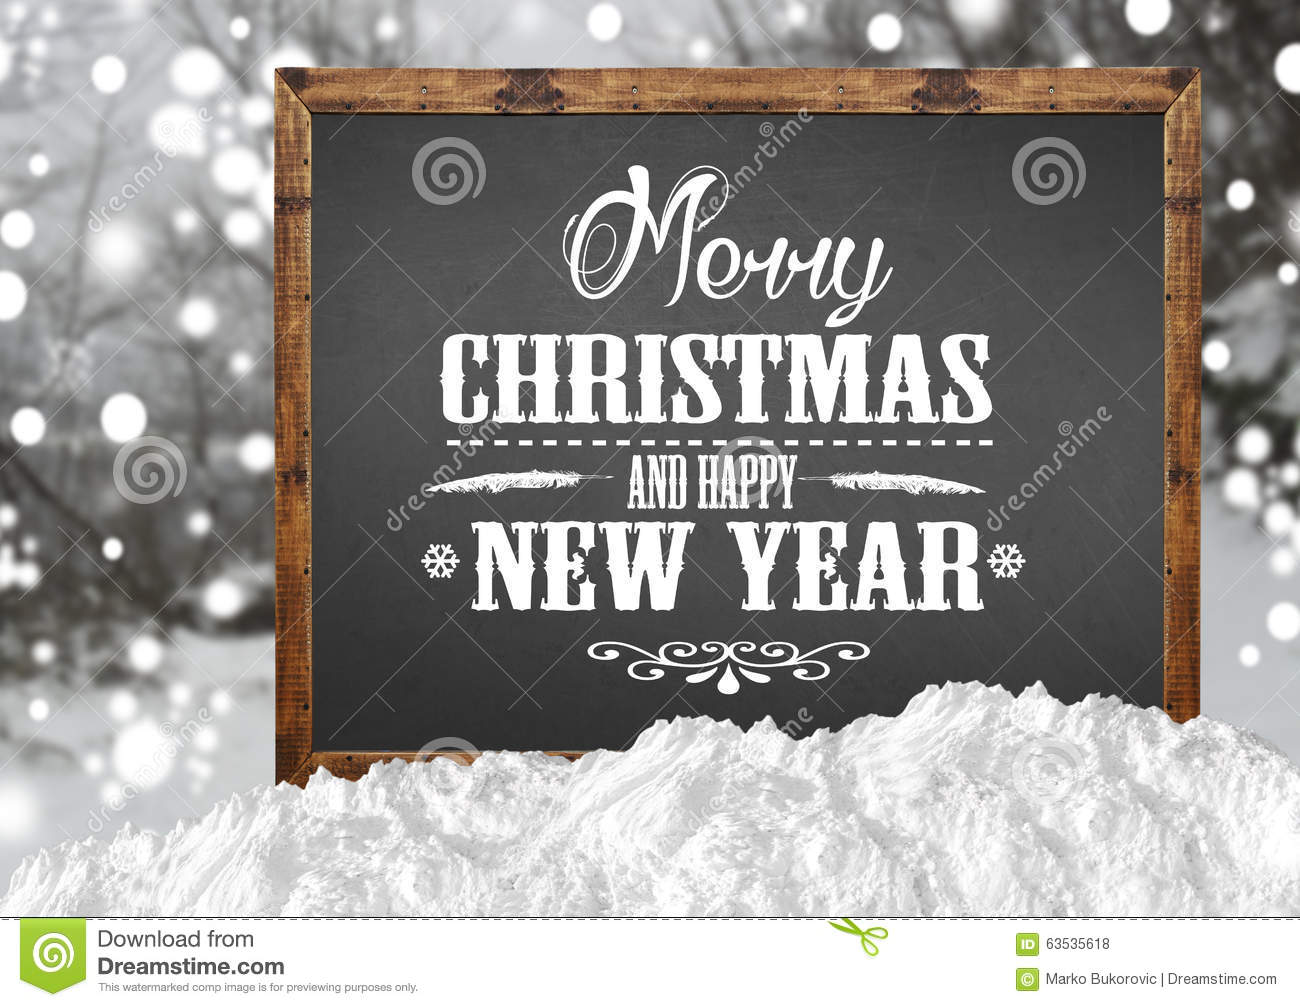 merry christmas and happy new year on blank blackboard with blur forest with snow